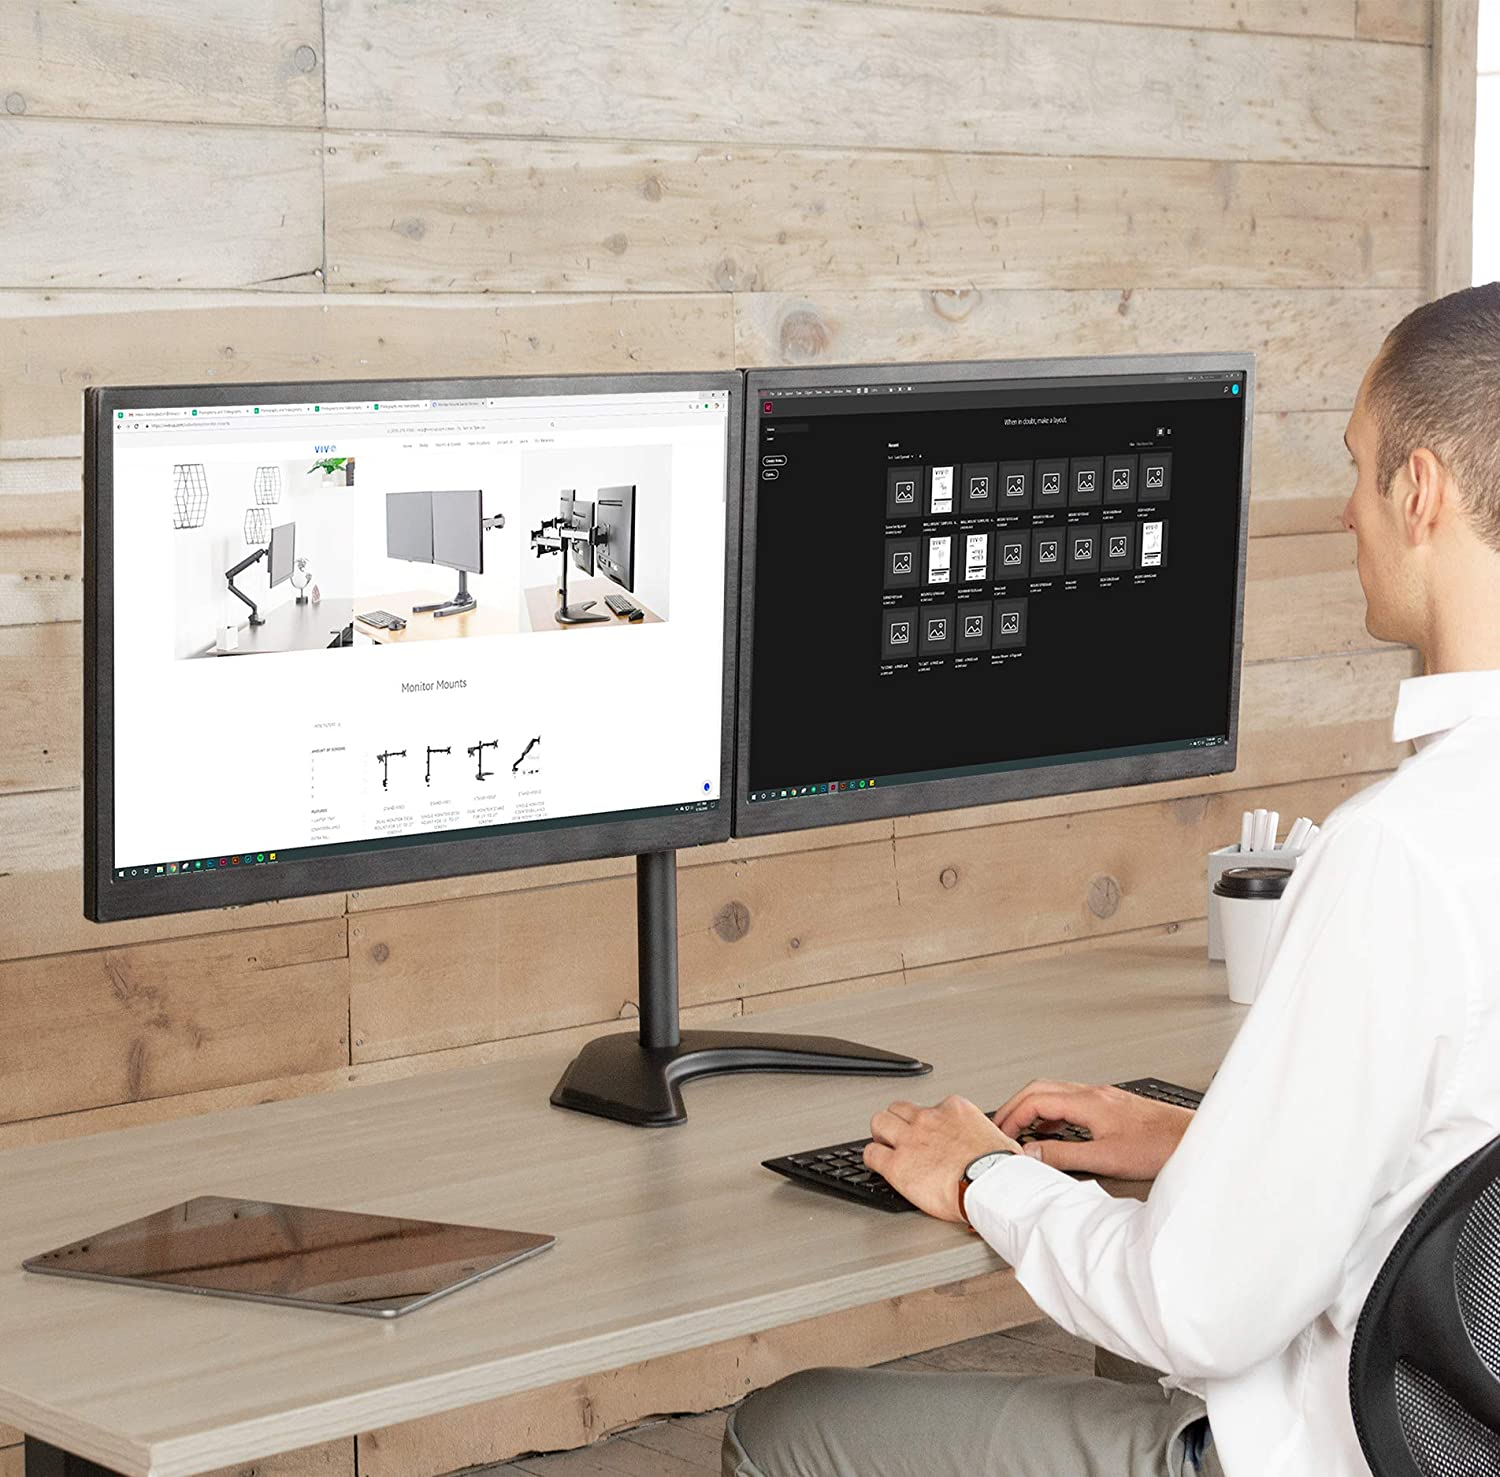 VIVO Dual LED LCD Monitor Free-Standing Desk Stand for 2 Screens up to 27 inches VESA - 4